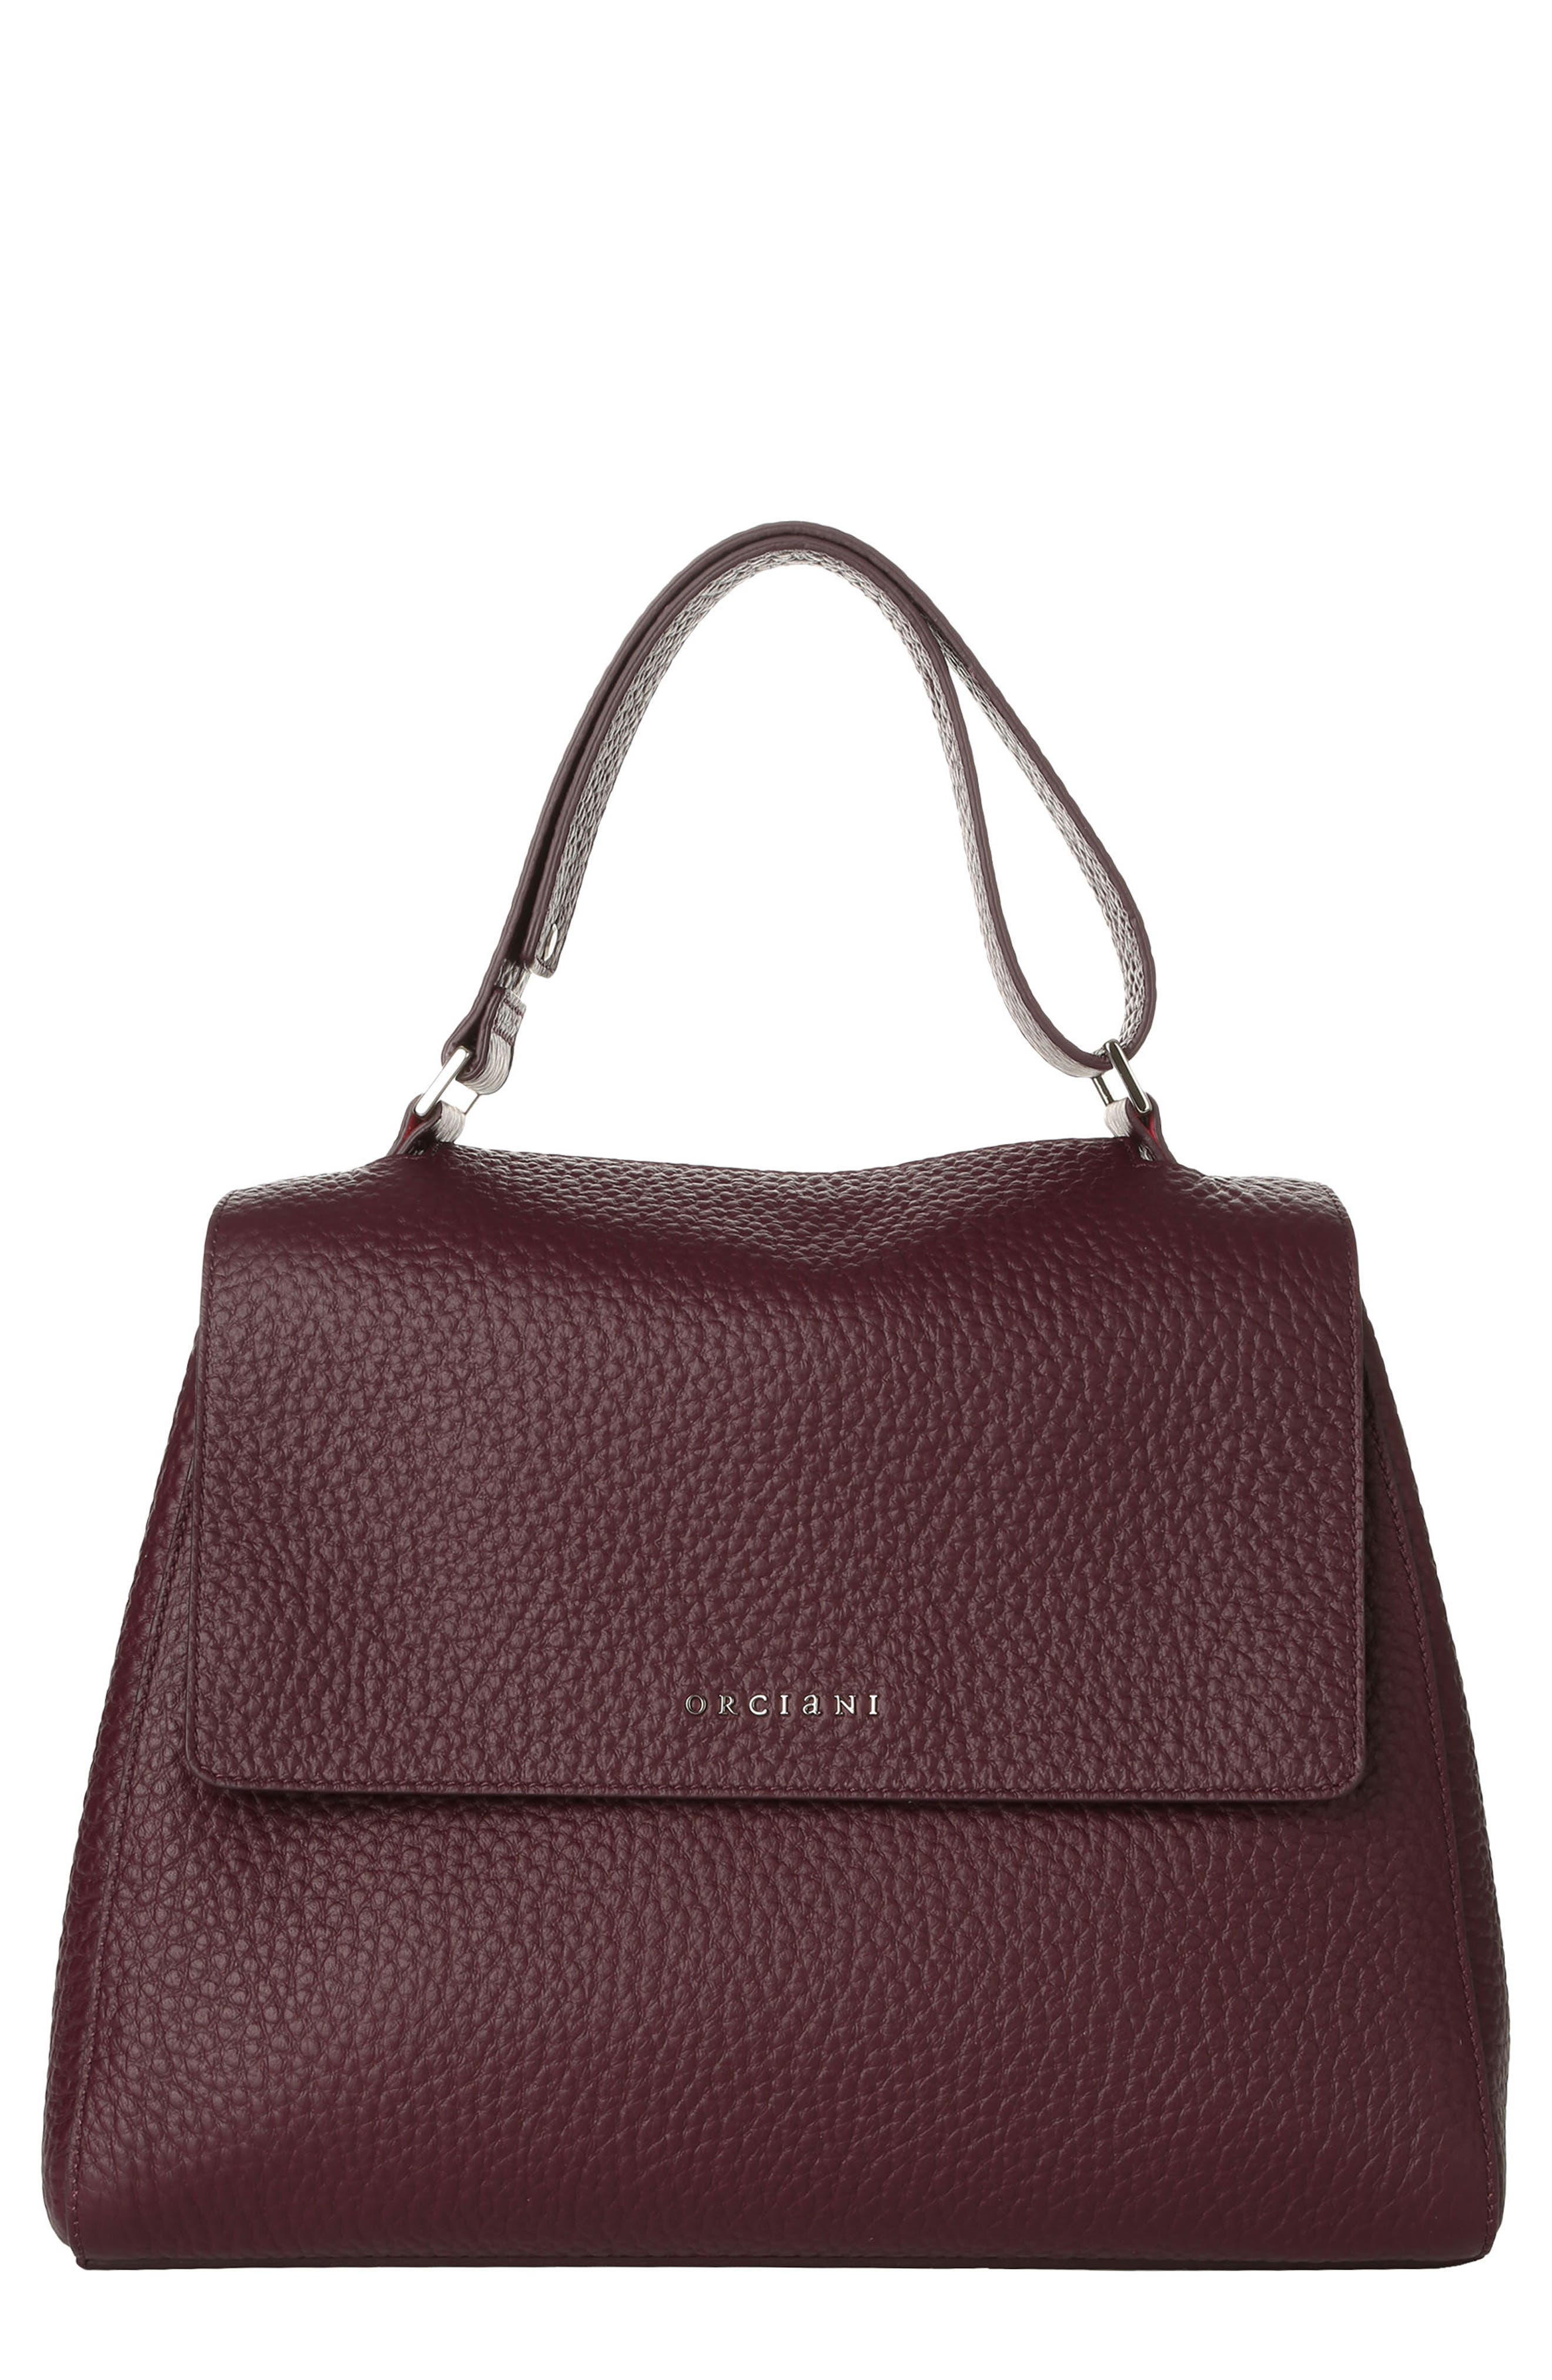 Main Image - Orciani Medium Sveva Soft Leather Top Handle Satchel